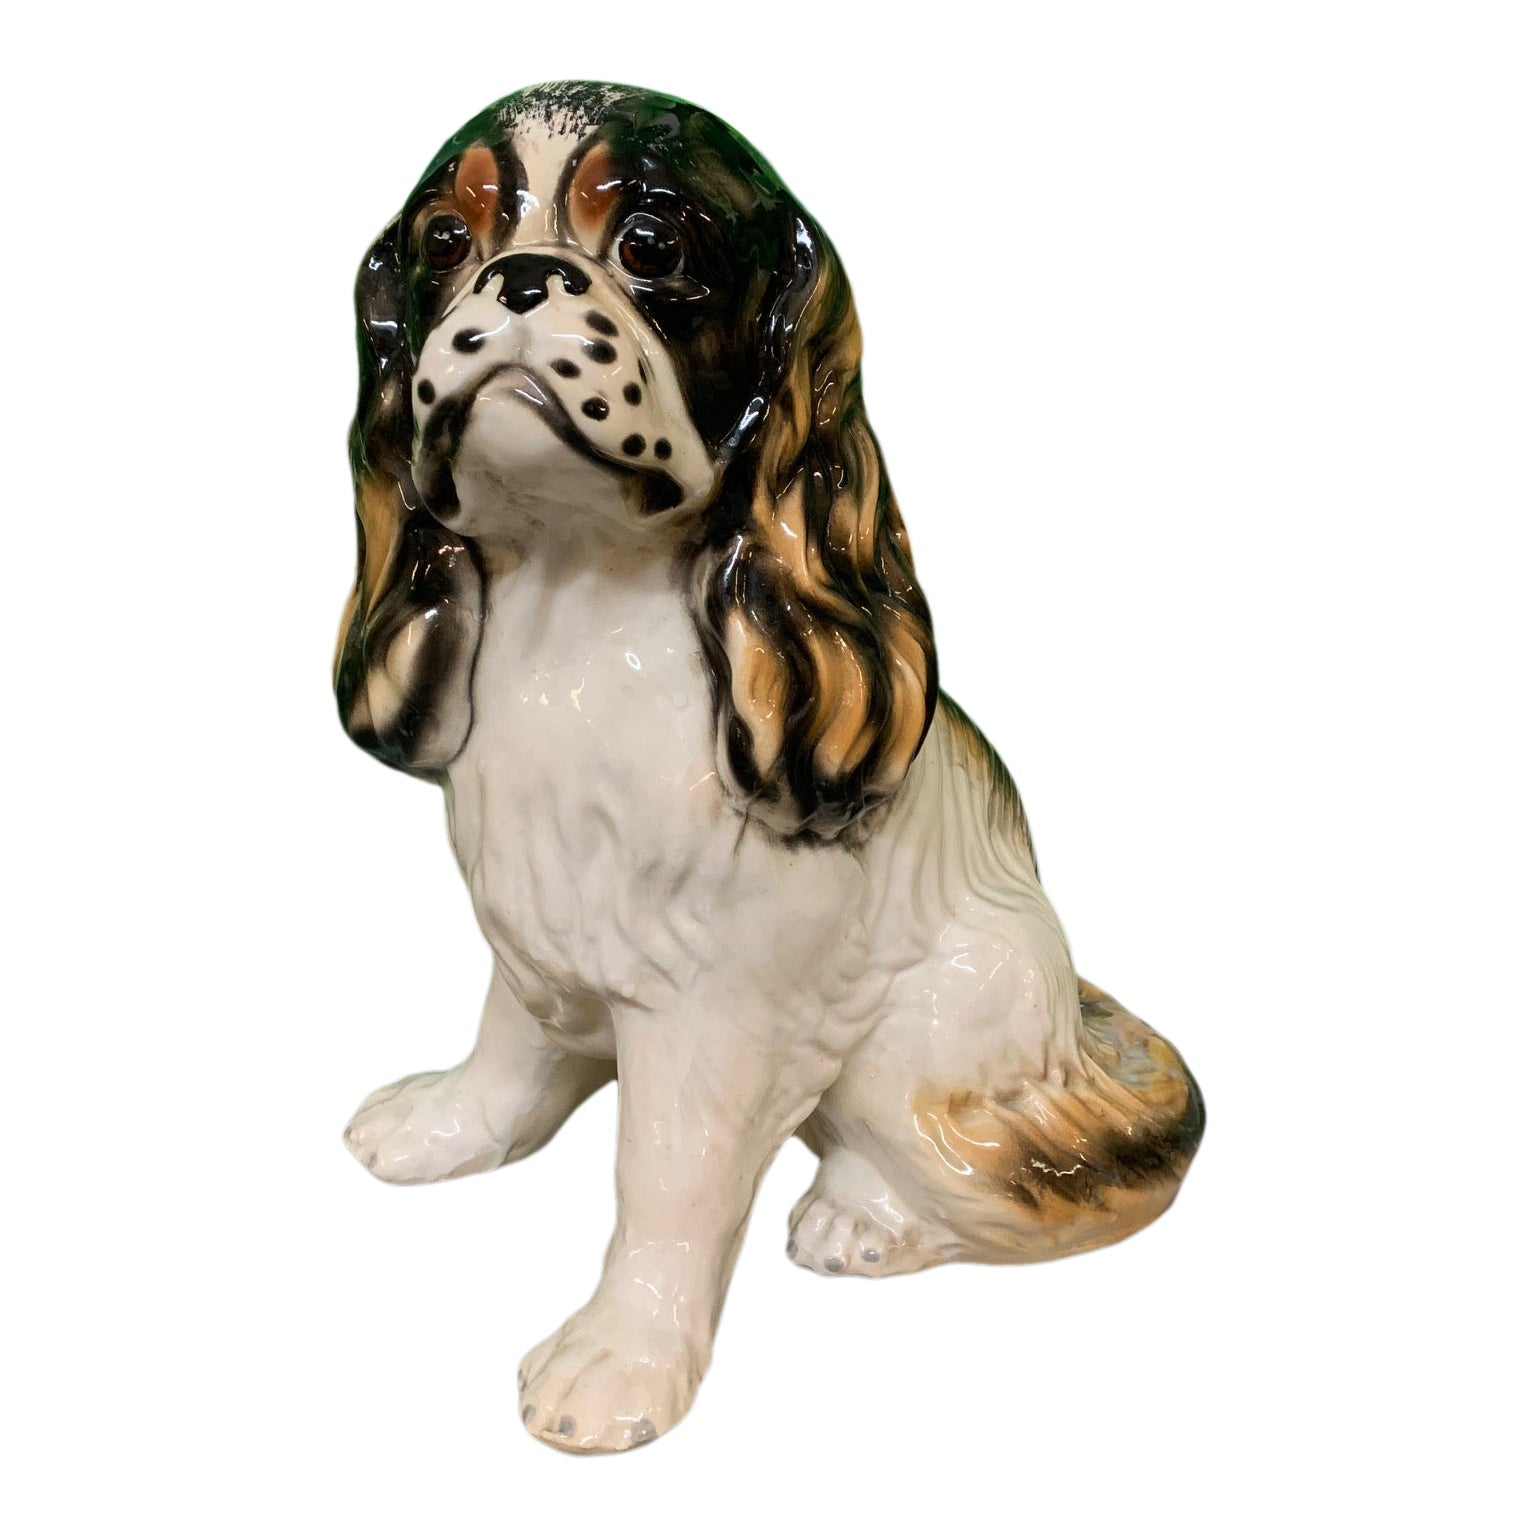 Ceramic King Charles Spaniel Dog Statue